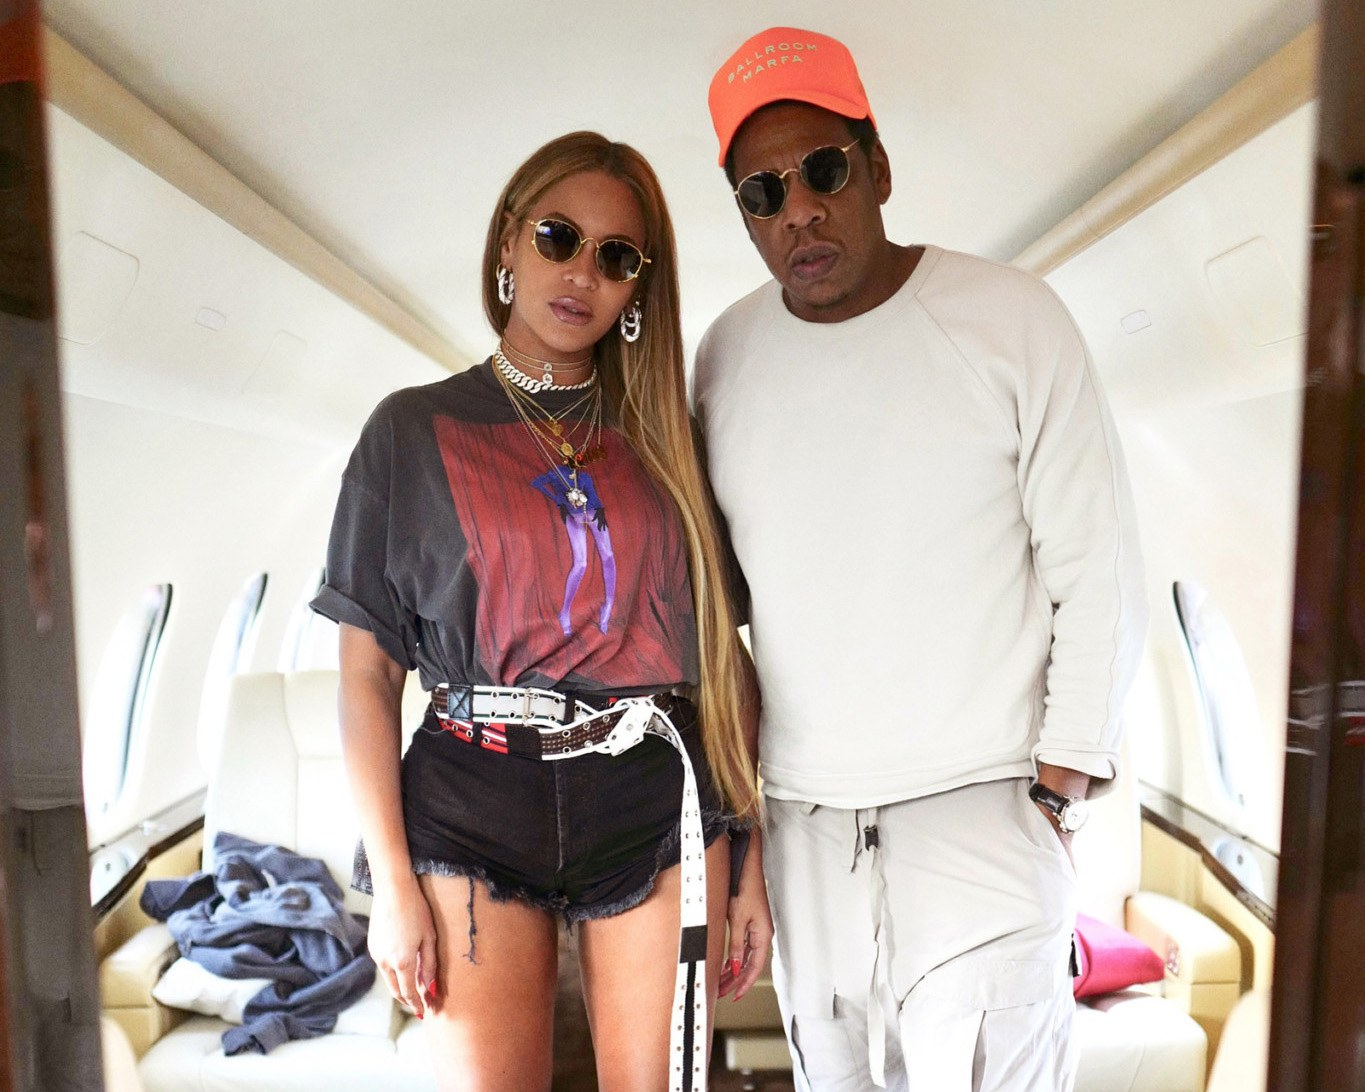 Beyoncé Glamorous Private Plane Look – Opulent Styling